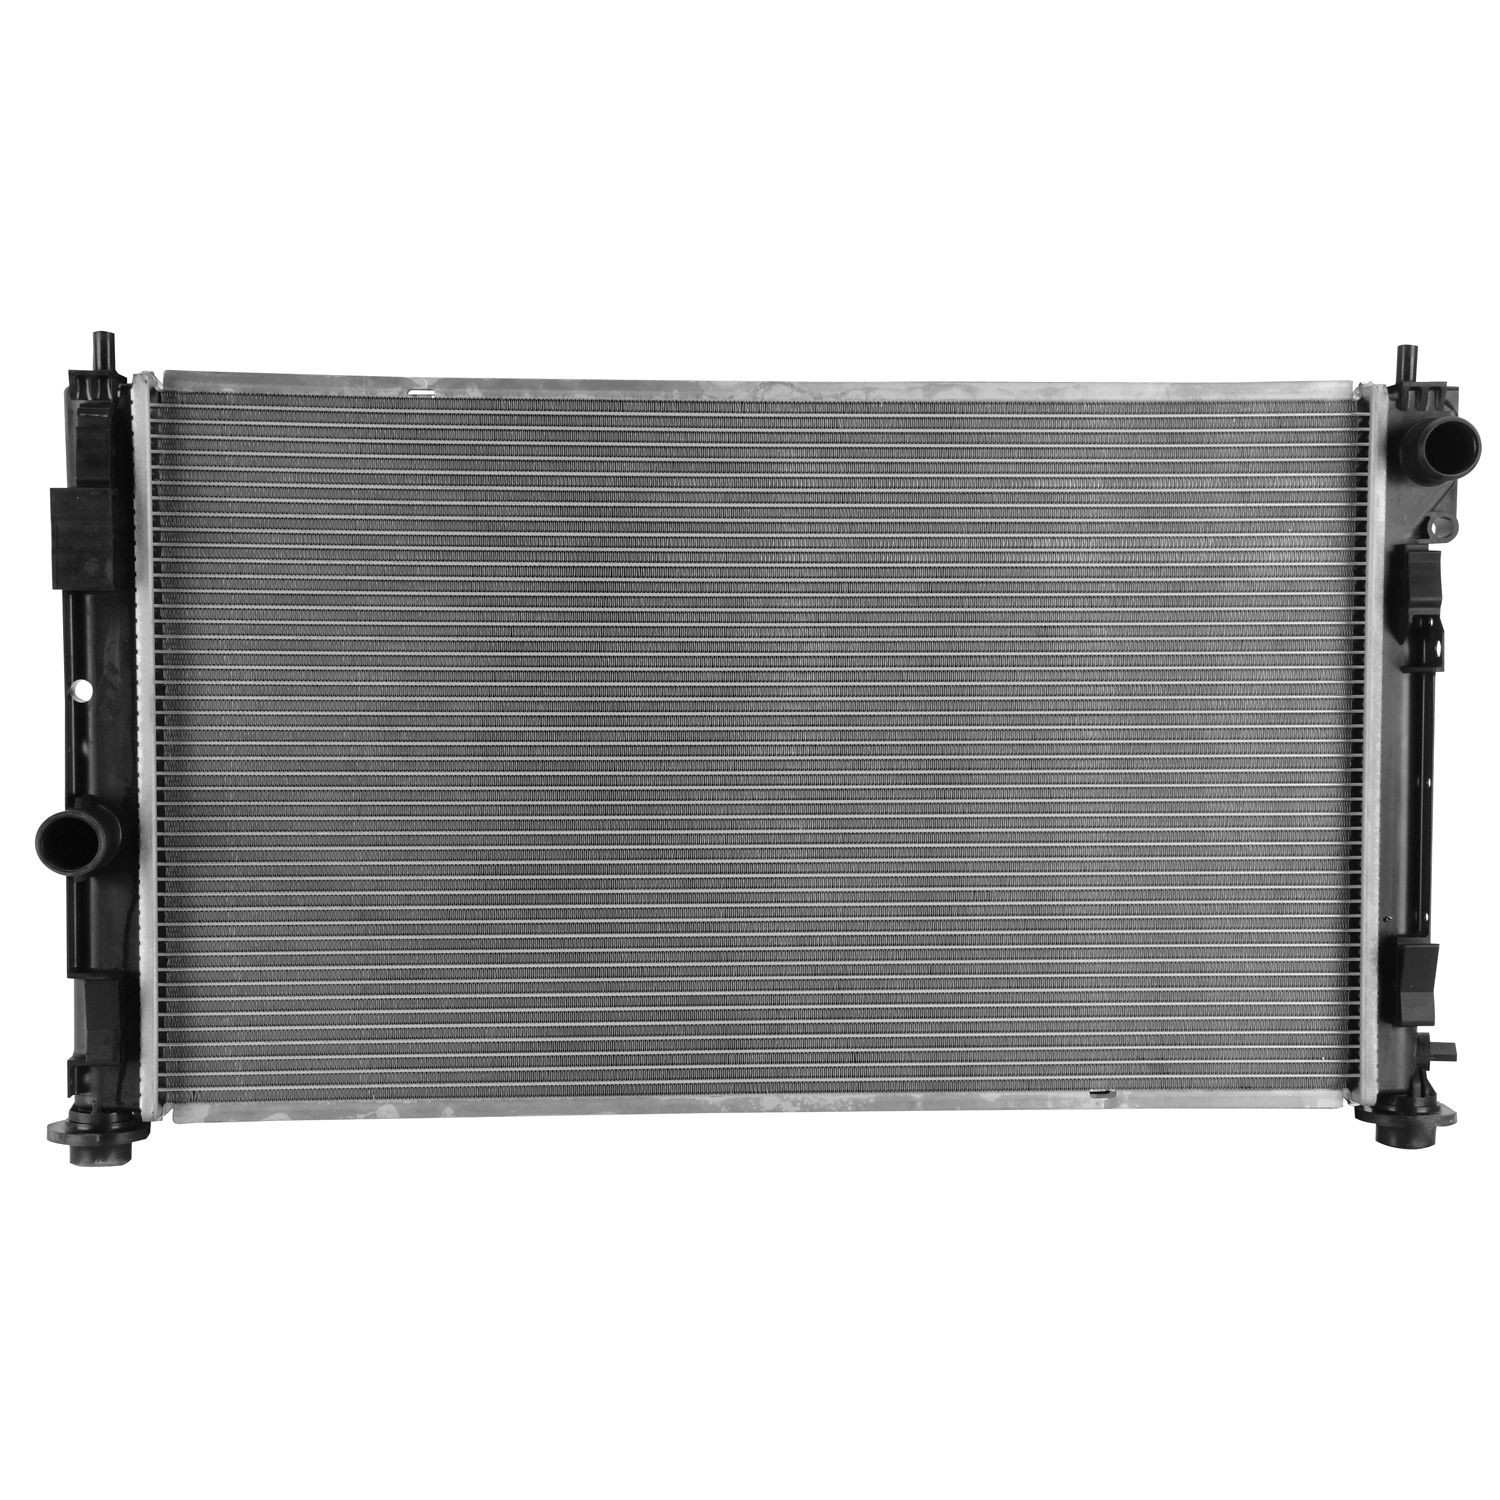 MAGNETI MARELLI OFFERED BY MOPAR - Radiator - MGM 2AMR2951AA